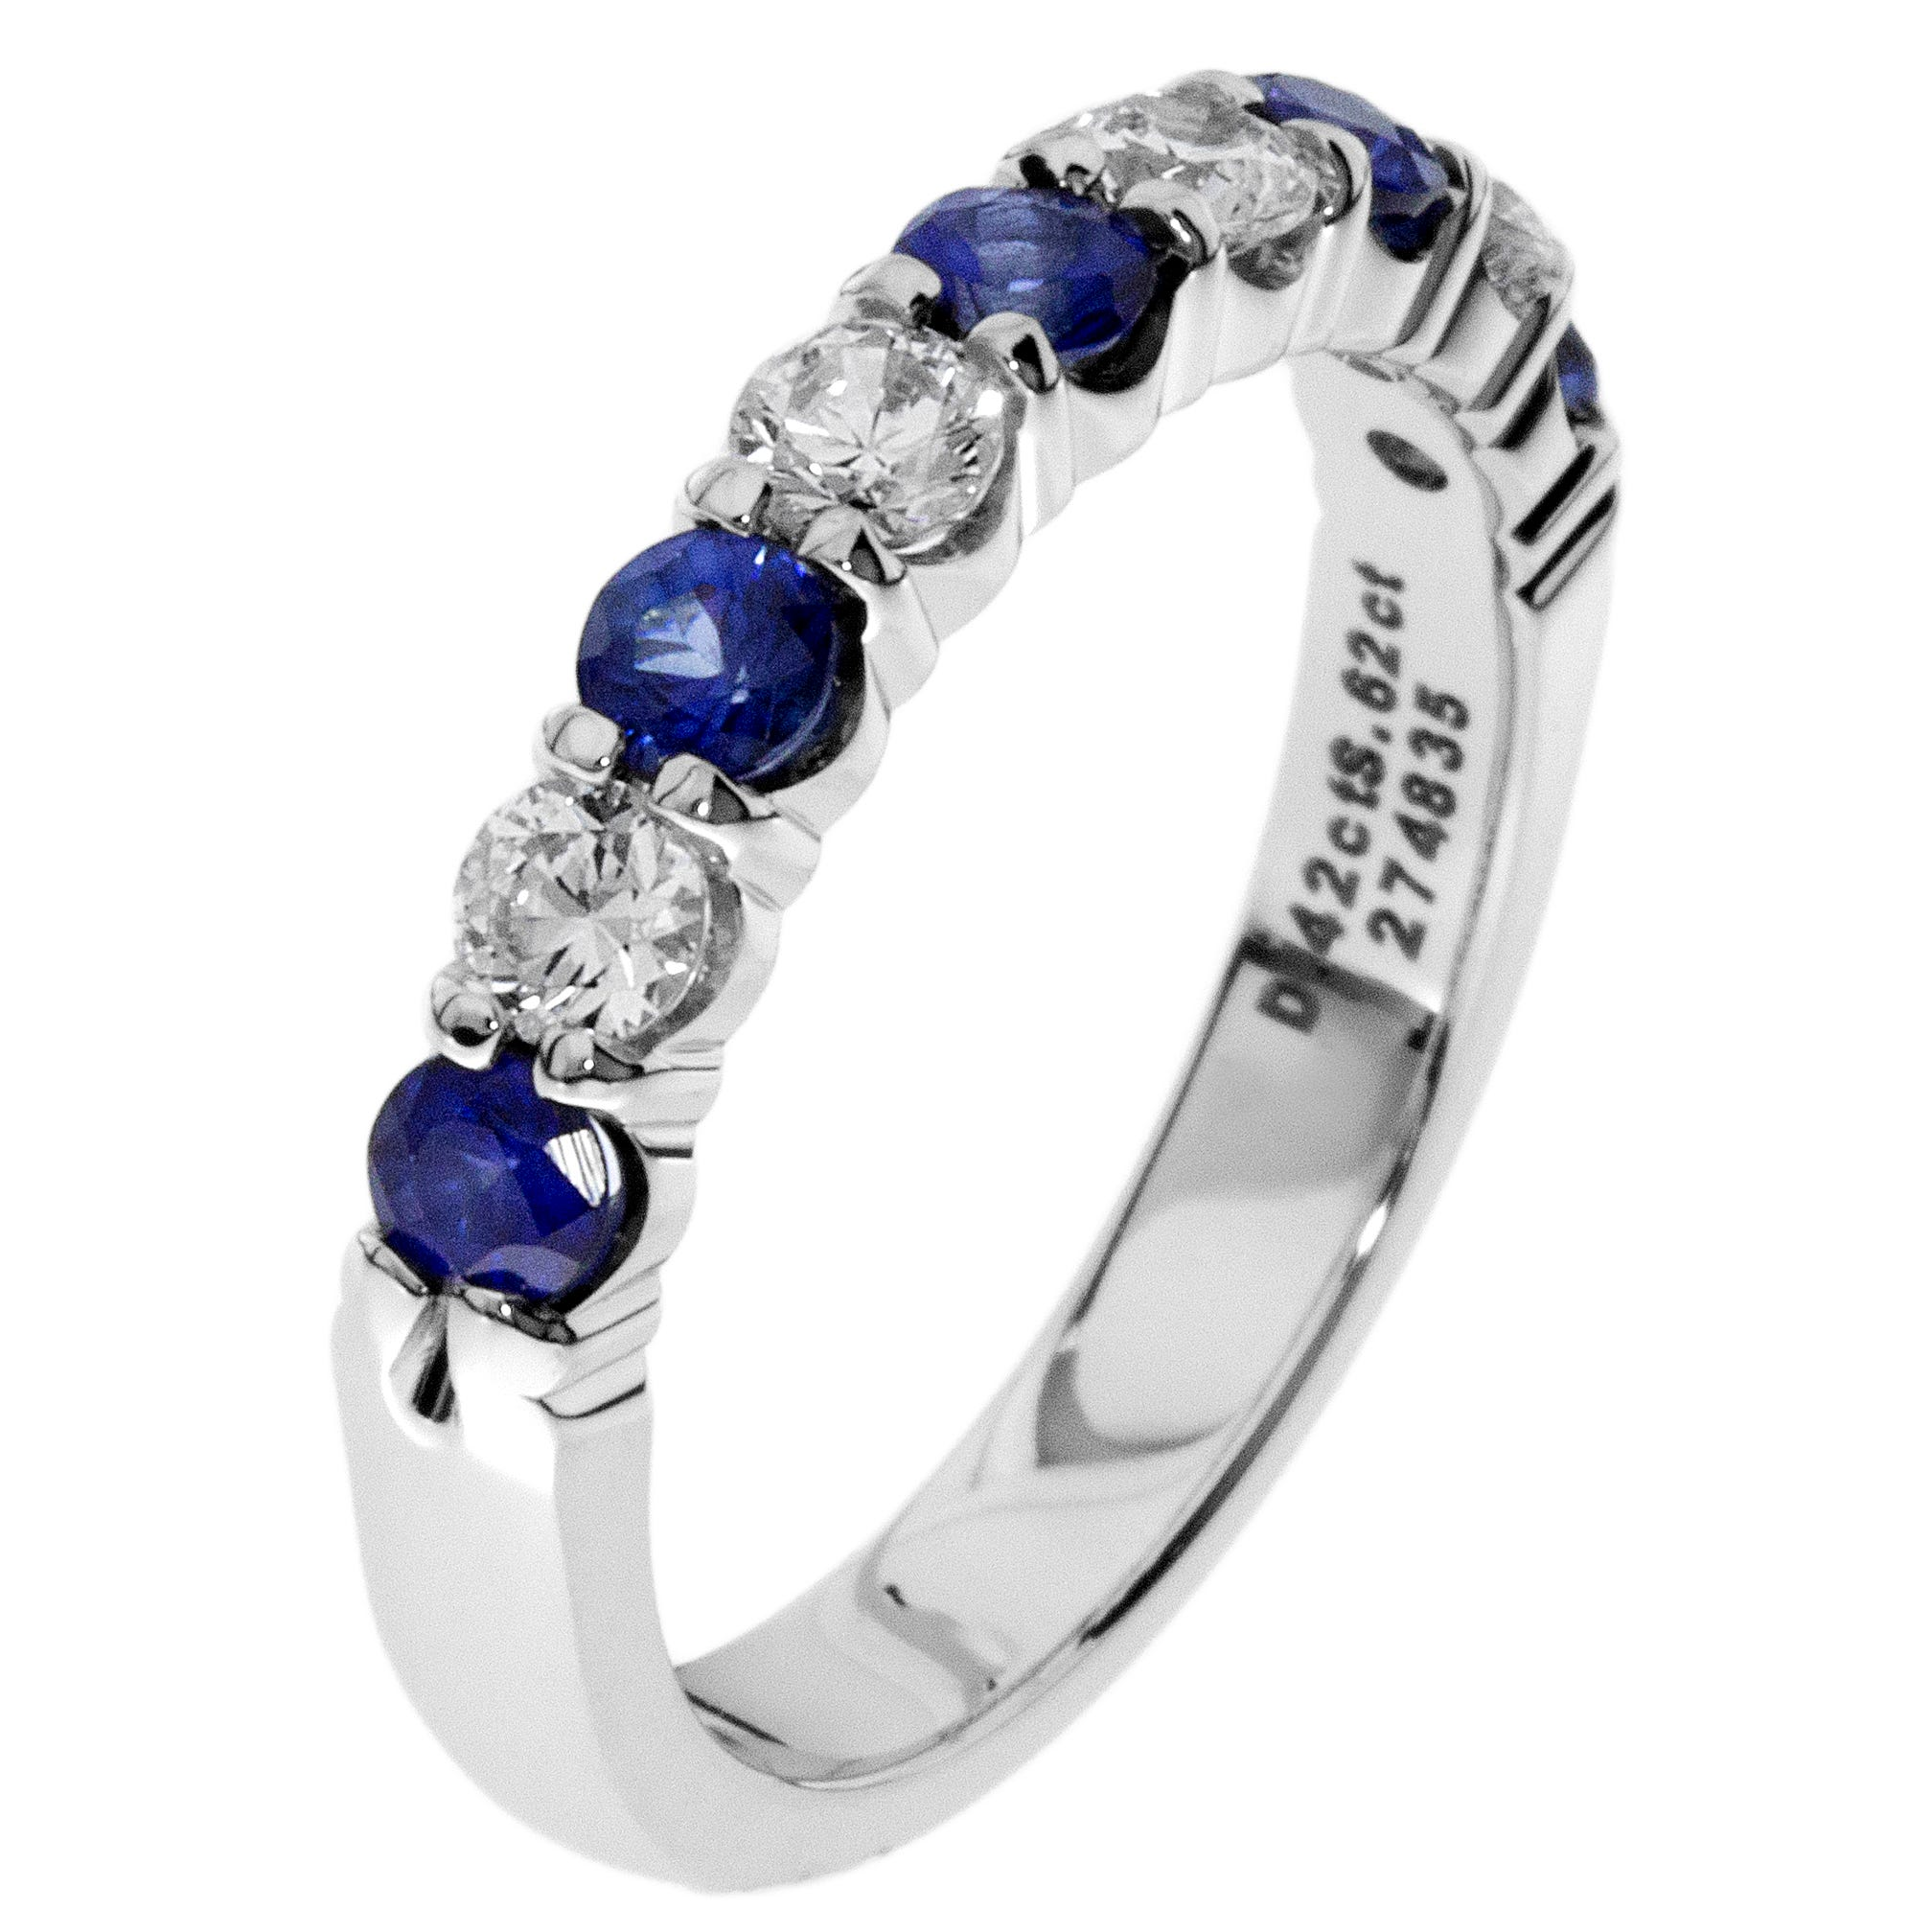 Diamond & Sapphire Prong Set 0.55ctw. Band in 14k White Gold